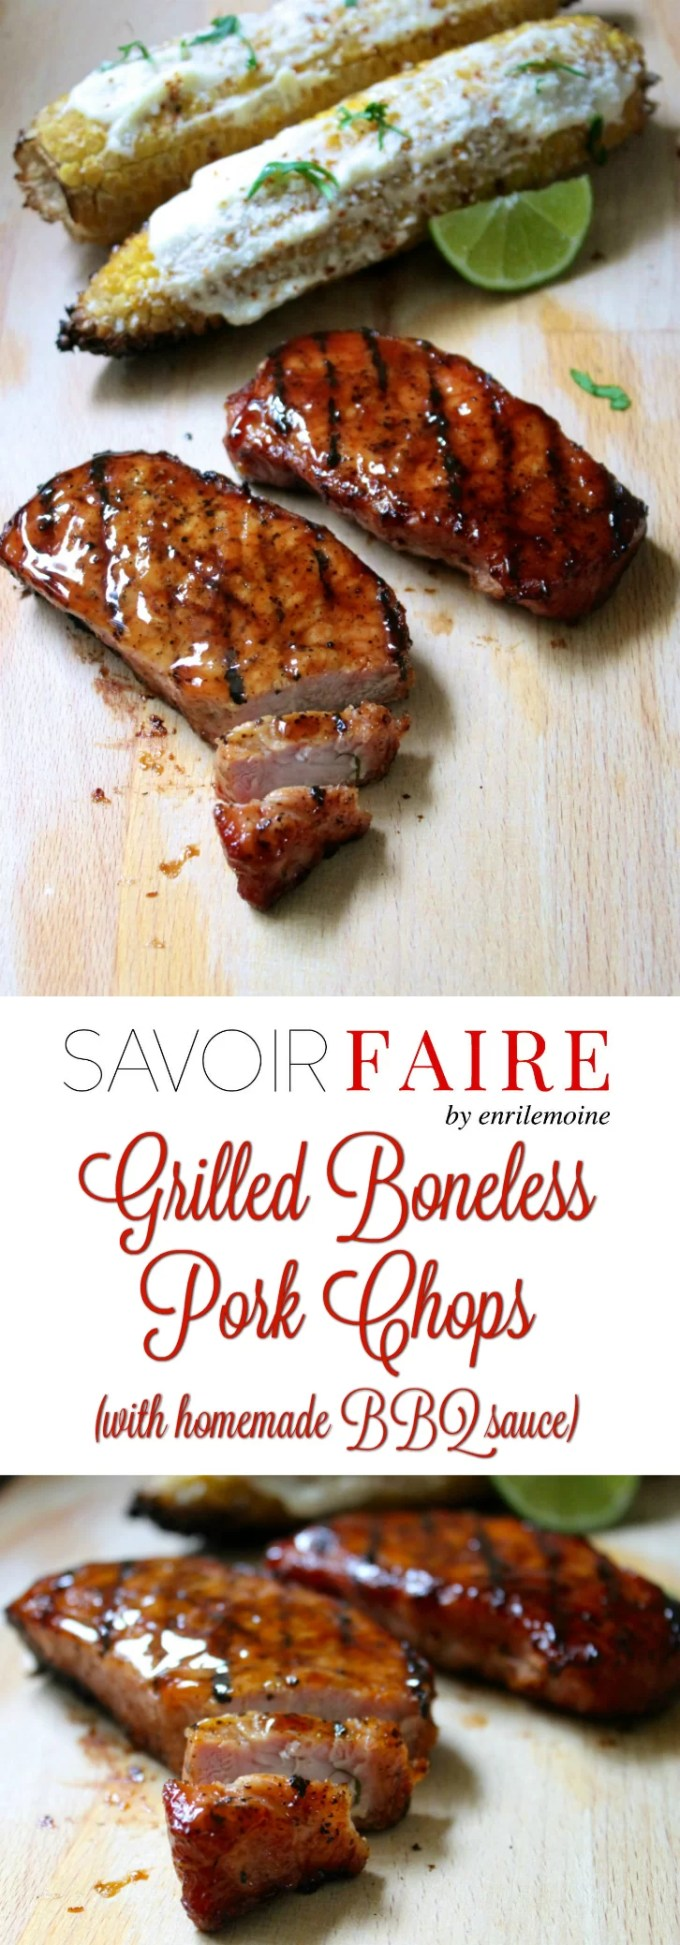 These boneless pork chops were grilled over indirect fire. By adding a few wood chips previously soaked in water to the hot coal, the meat acquires a distinctive delicious smoky flavor. Click for the step-by-step recipe. #Ad #SaborSmithfield